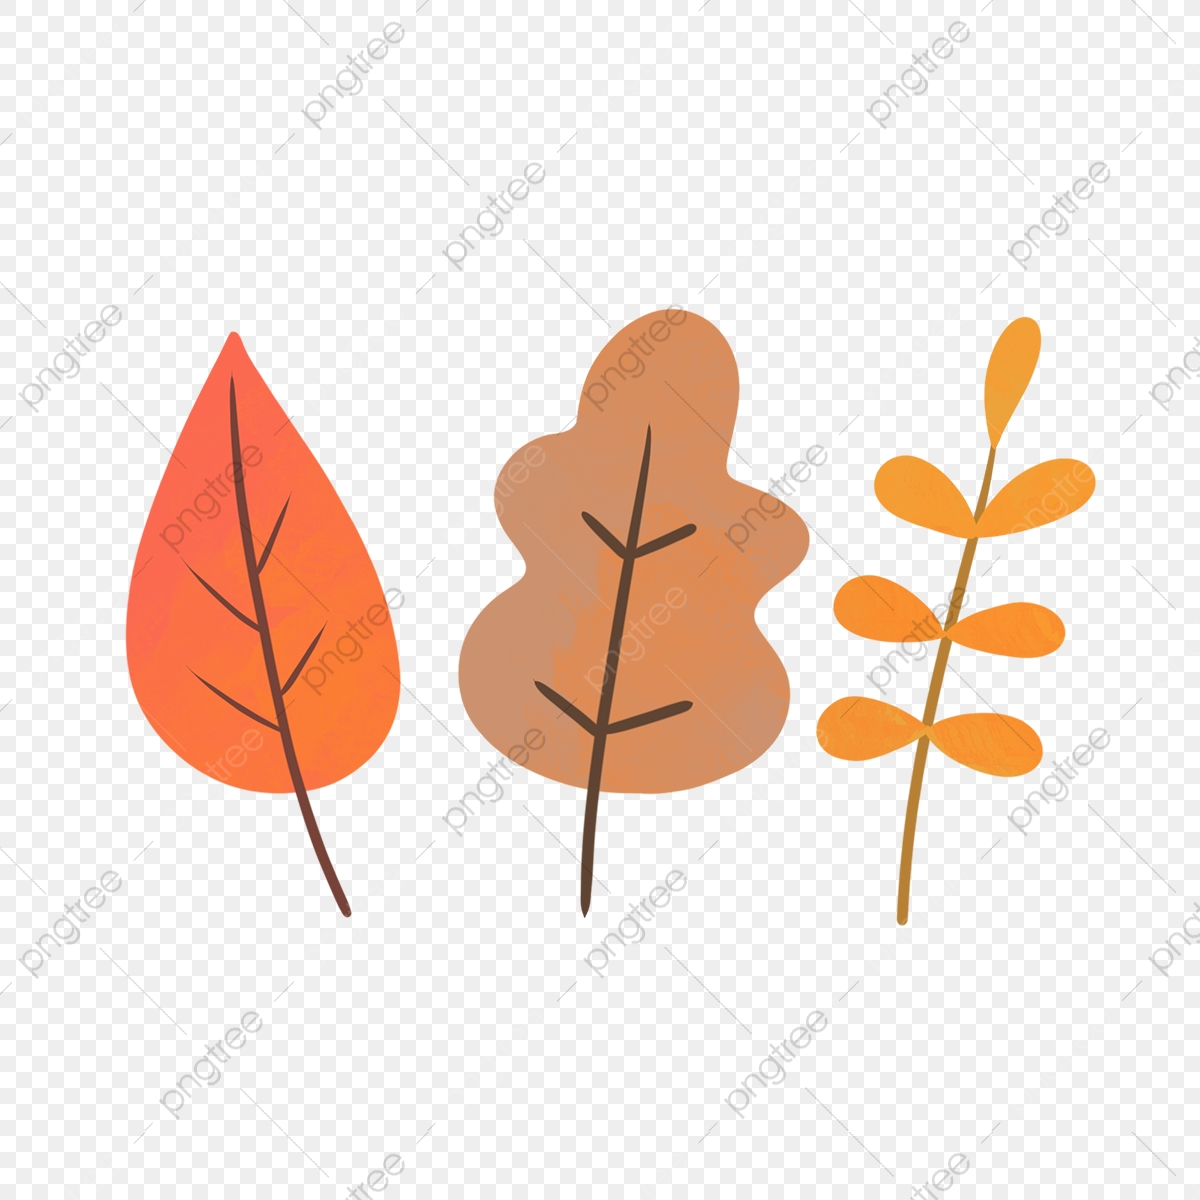 Hand Drawn Cute Autumn Leaves Set Cartoon Cute Hand Drawn Png Transparent Clipart Image And Psd File For Free Download